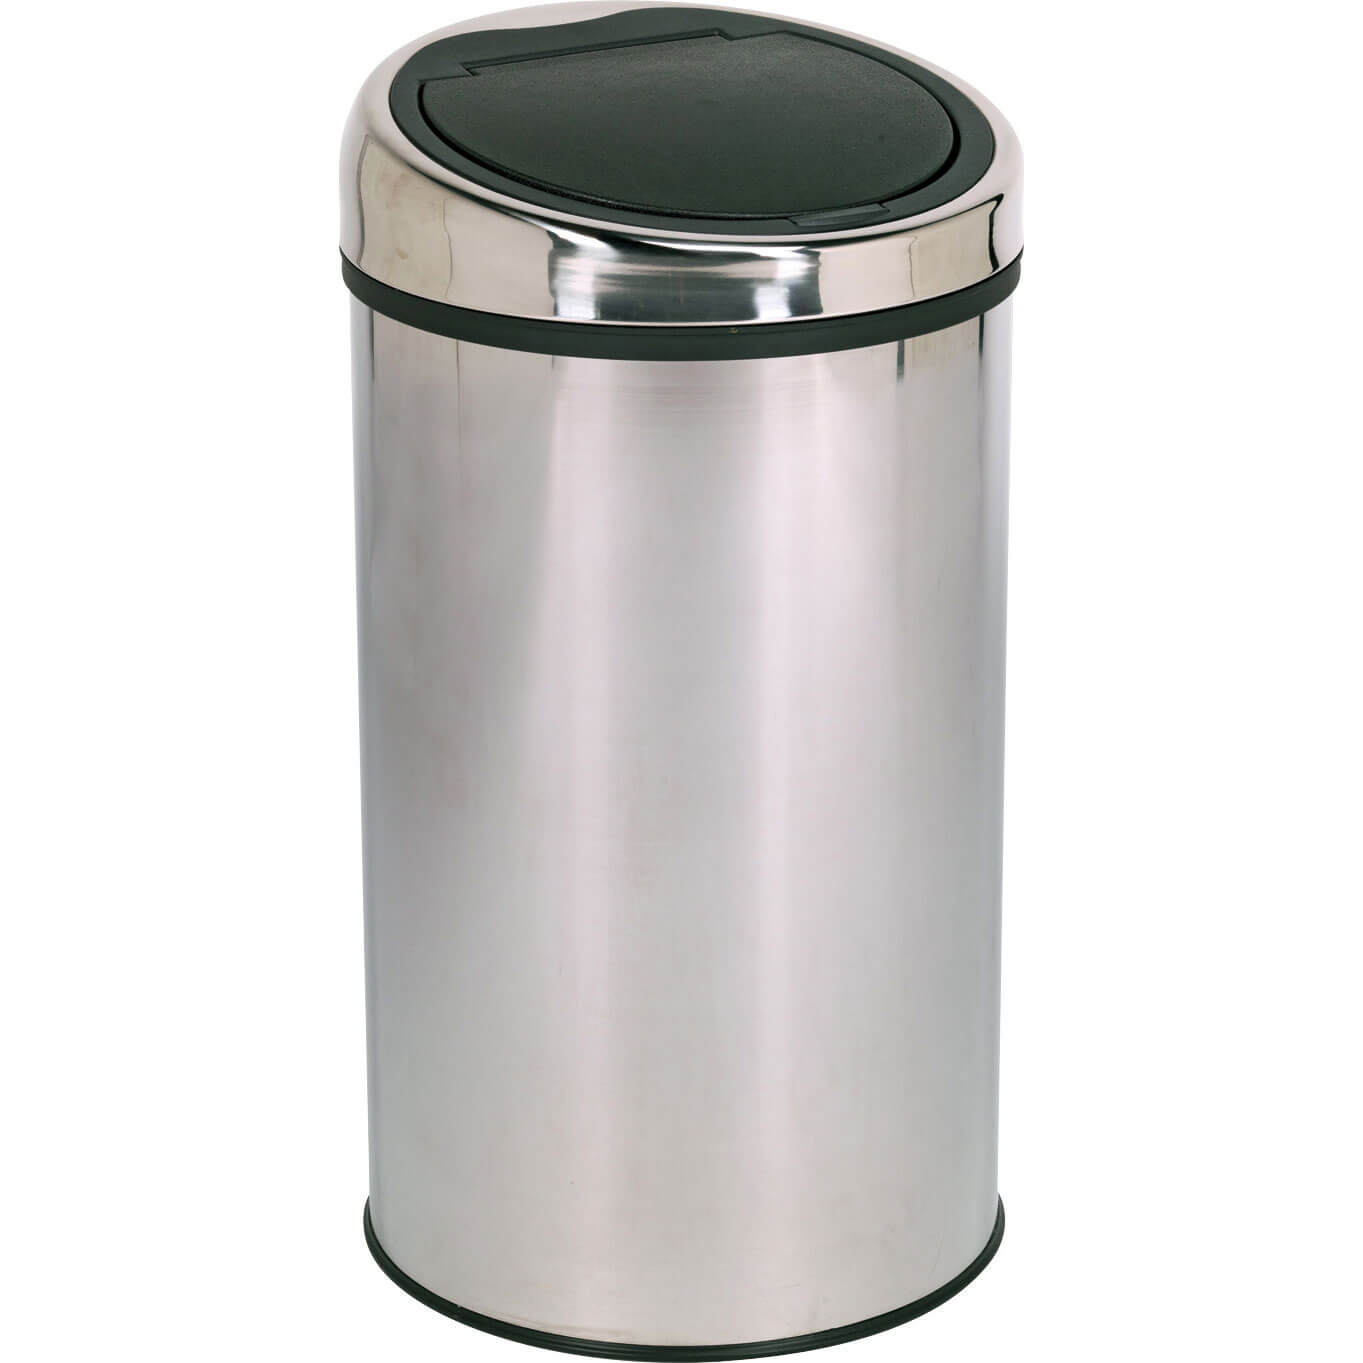 Image of Sealey Stainless Steel Pedal Bin 50l